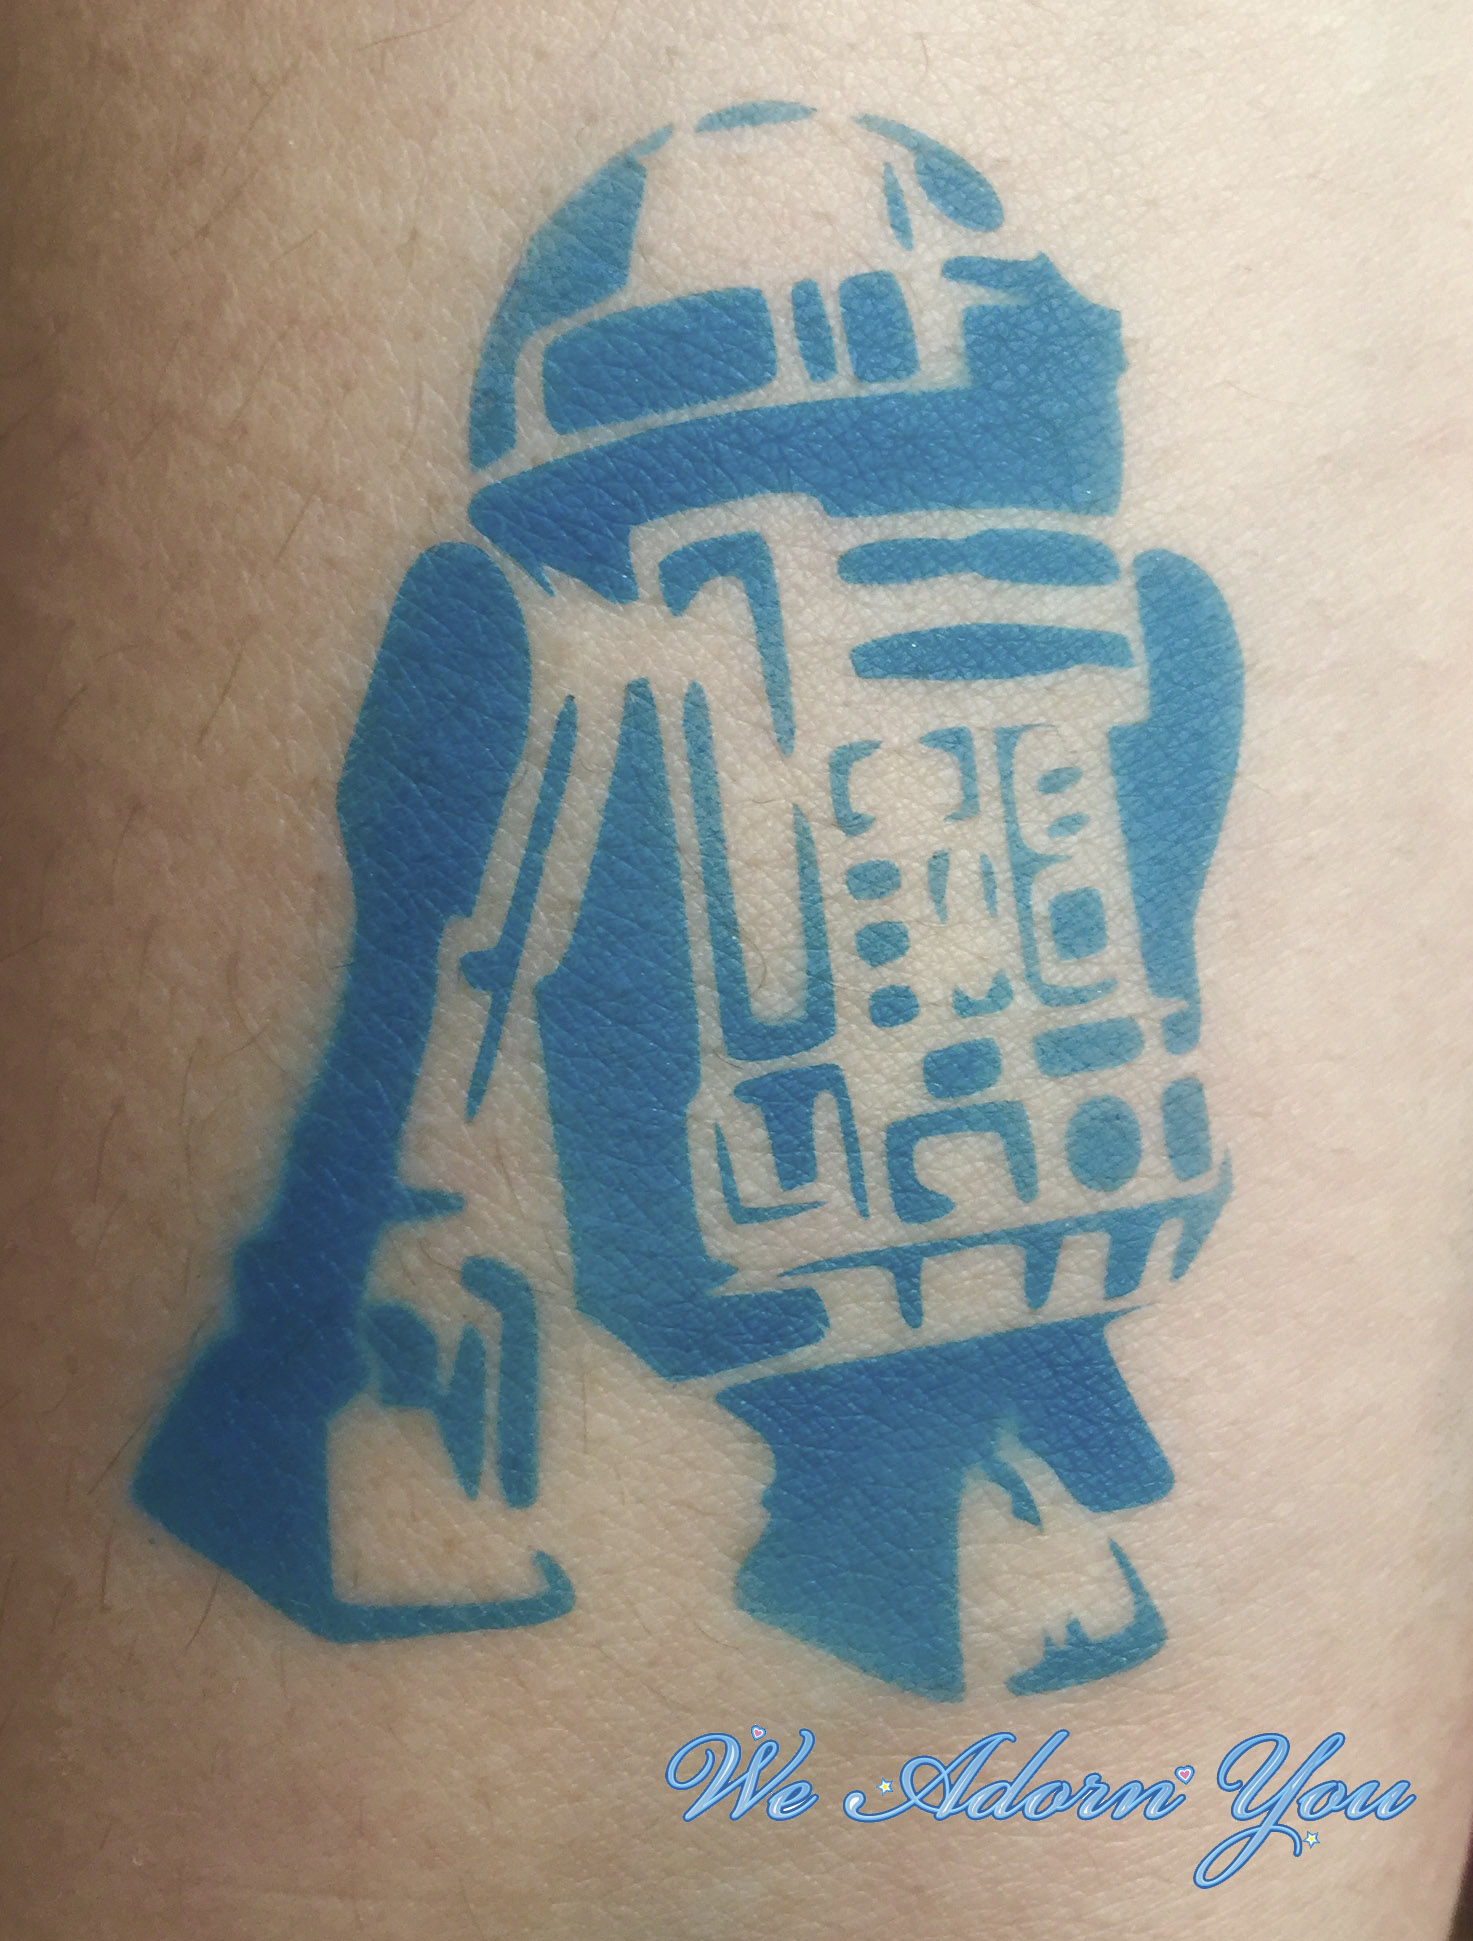 Airbrush Tattoo R2D2 - We Adorn You.jpg